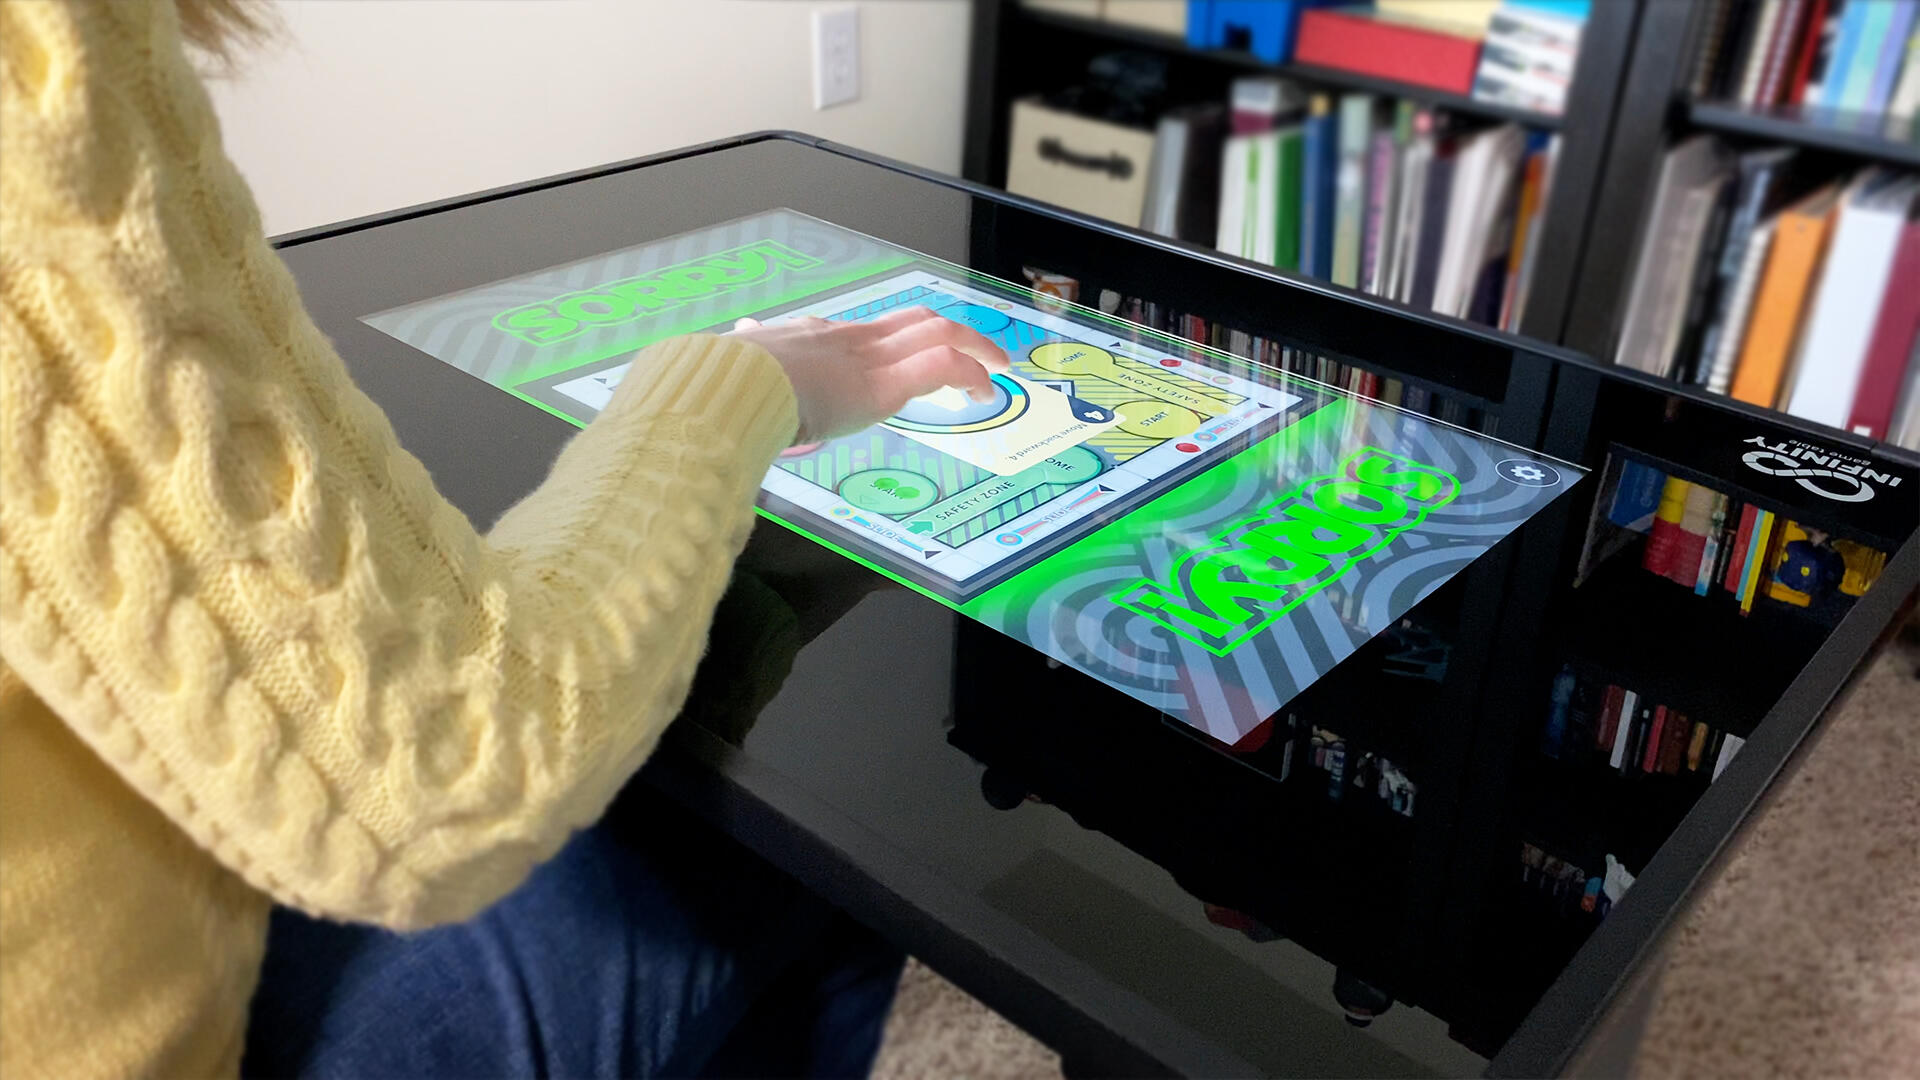 Video: Infinity Game Table puts board games on demand